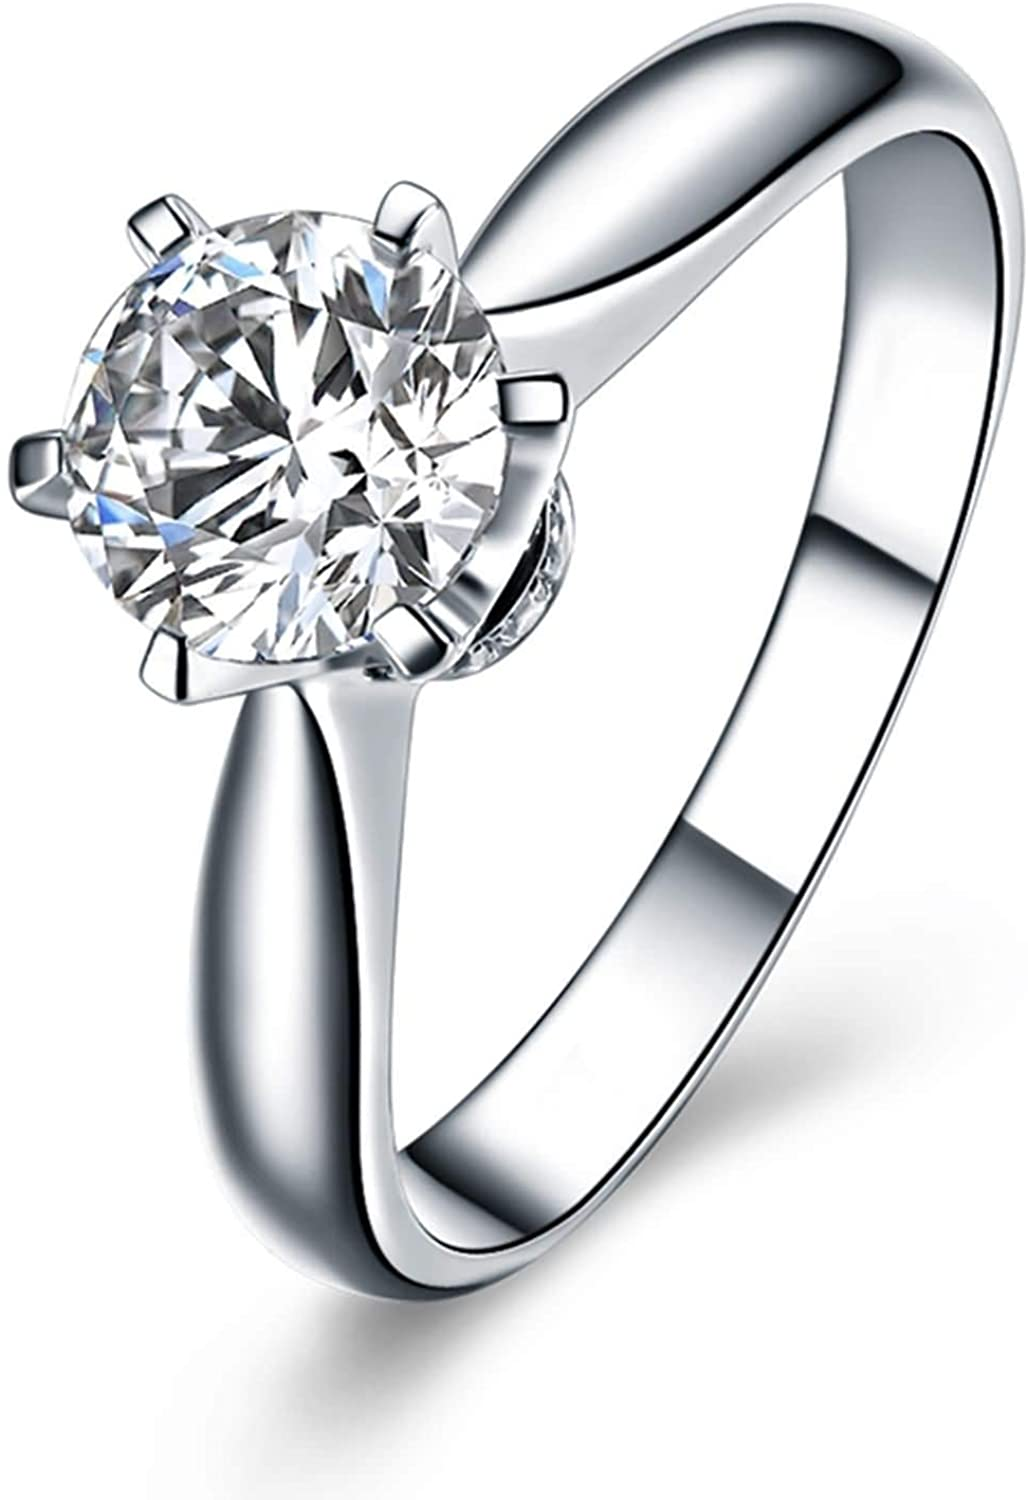 Aokarry Women's 18K White Gold Solitaire Engagement Ring Six-Claw Diamond